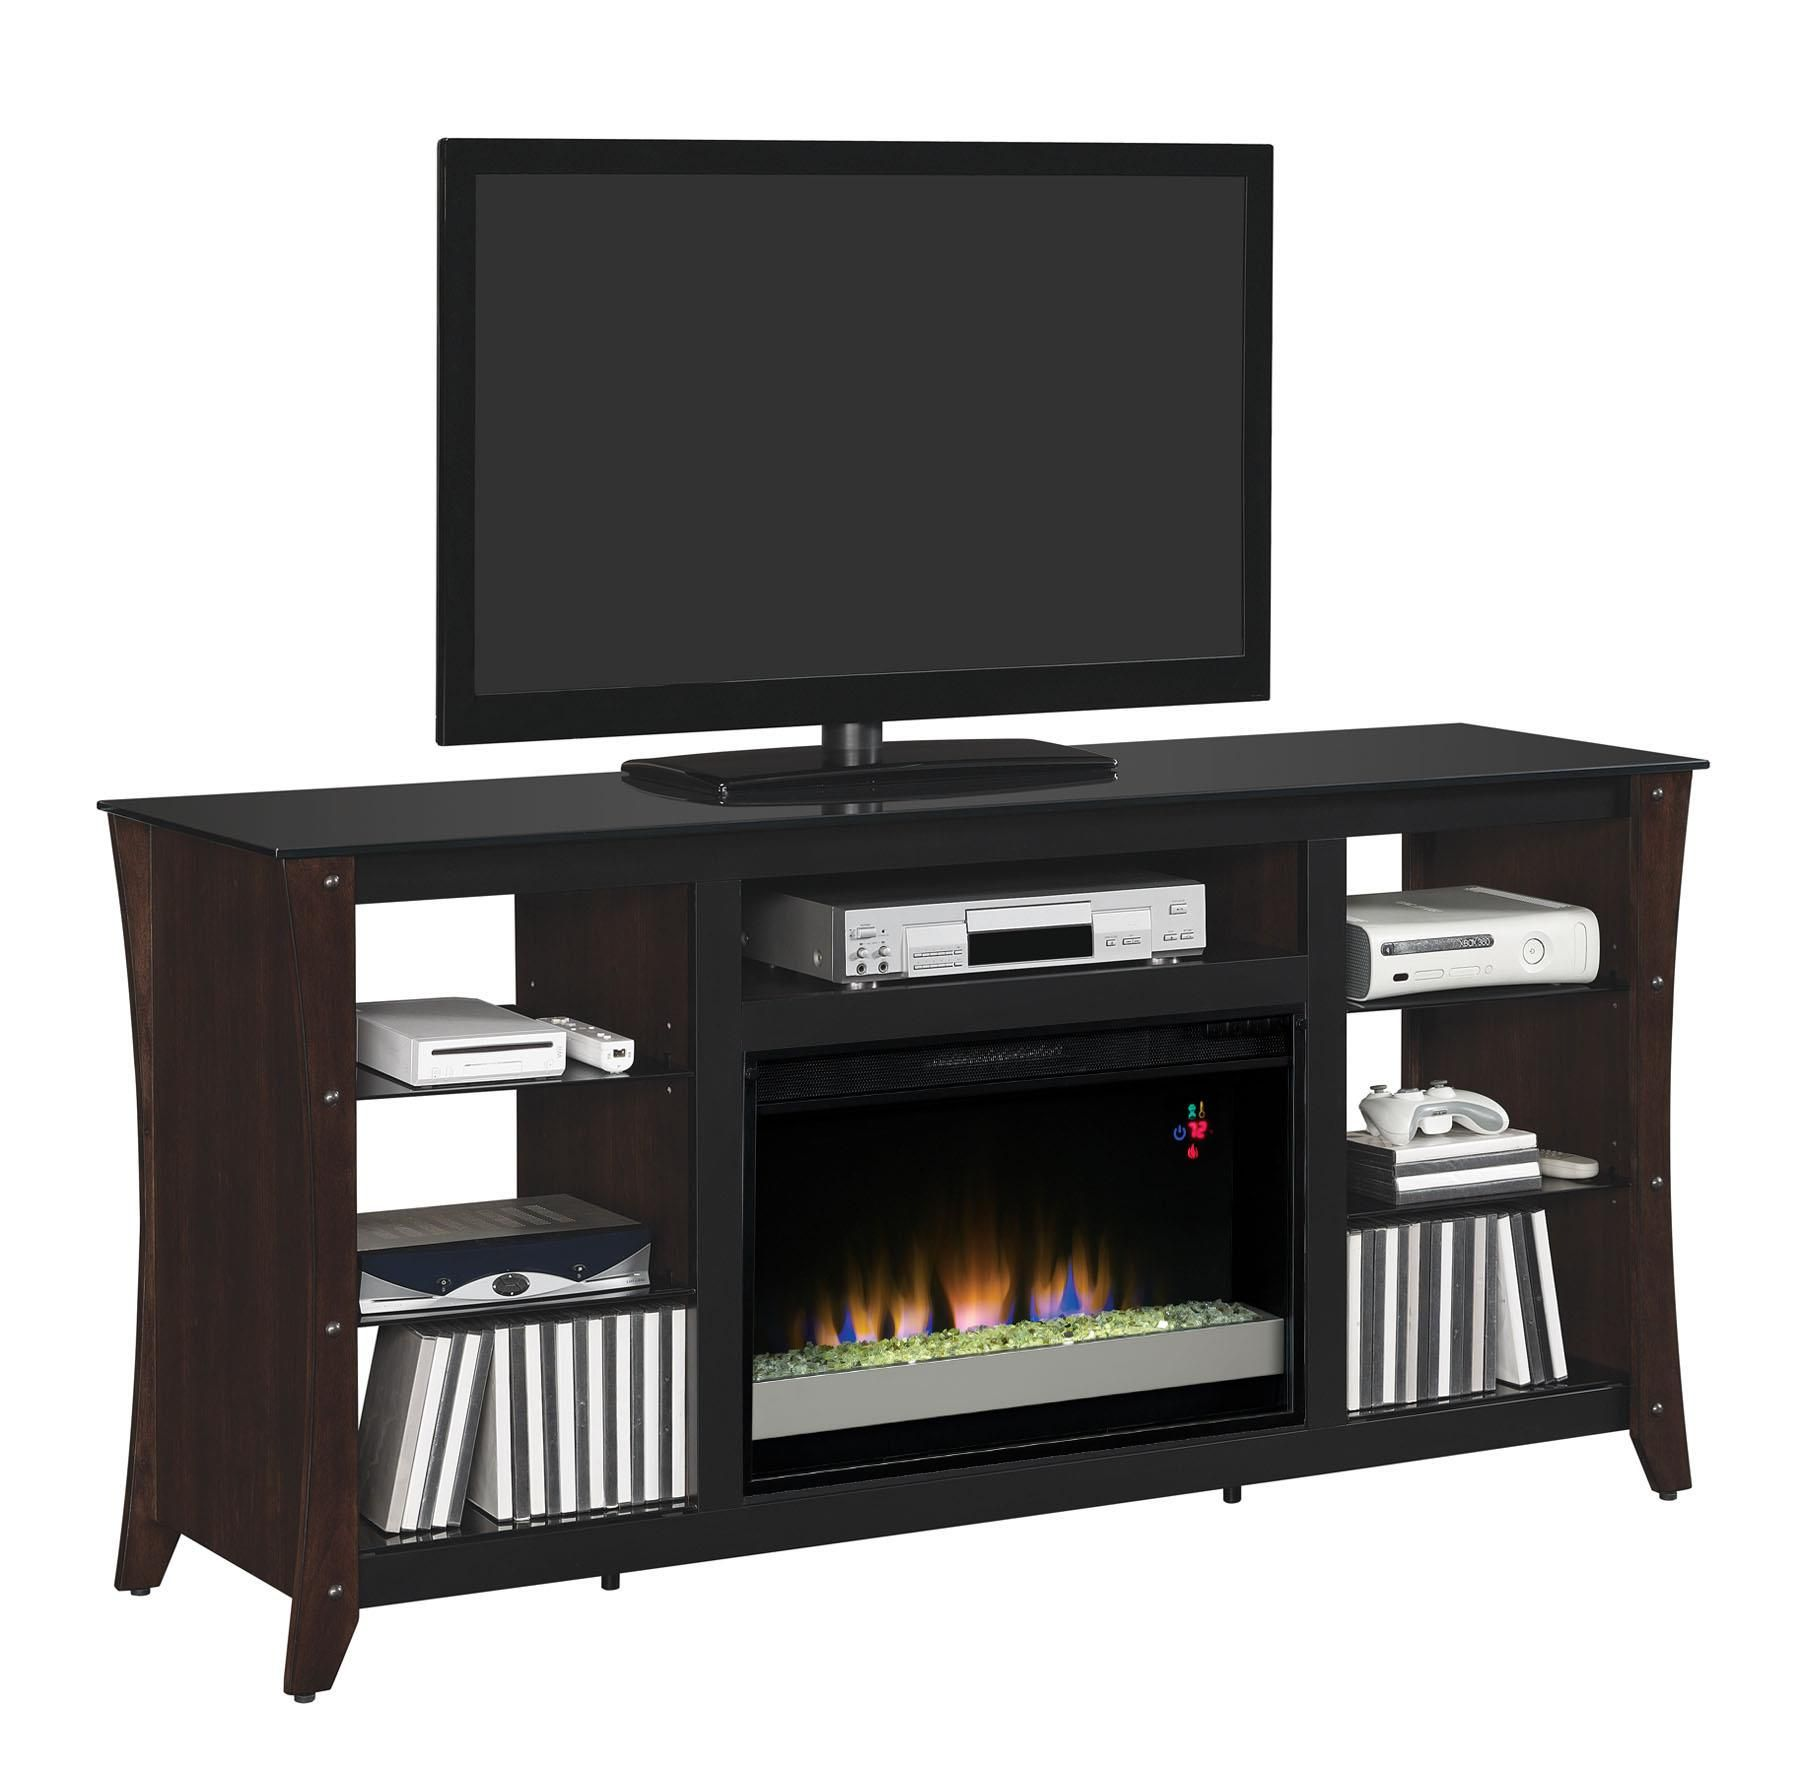 "Marlin Contemporary 66"" Media Mantel with Electric Fireplace"